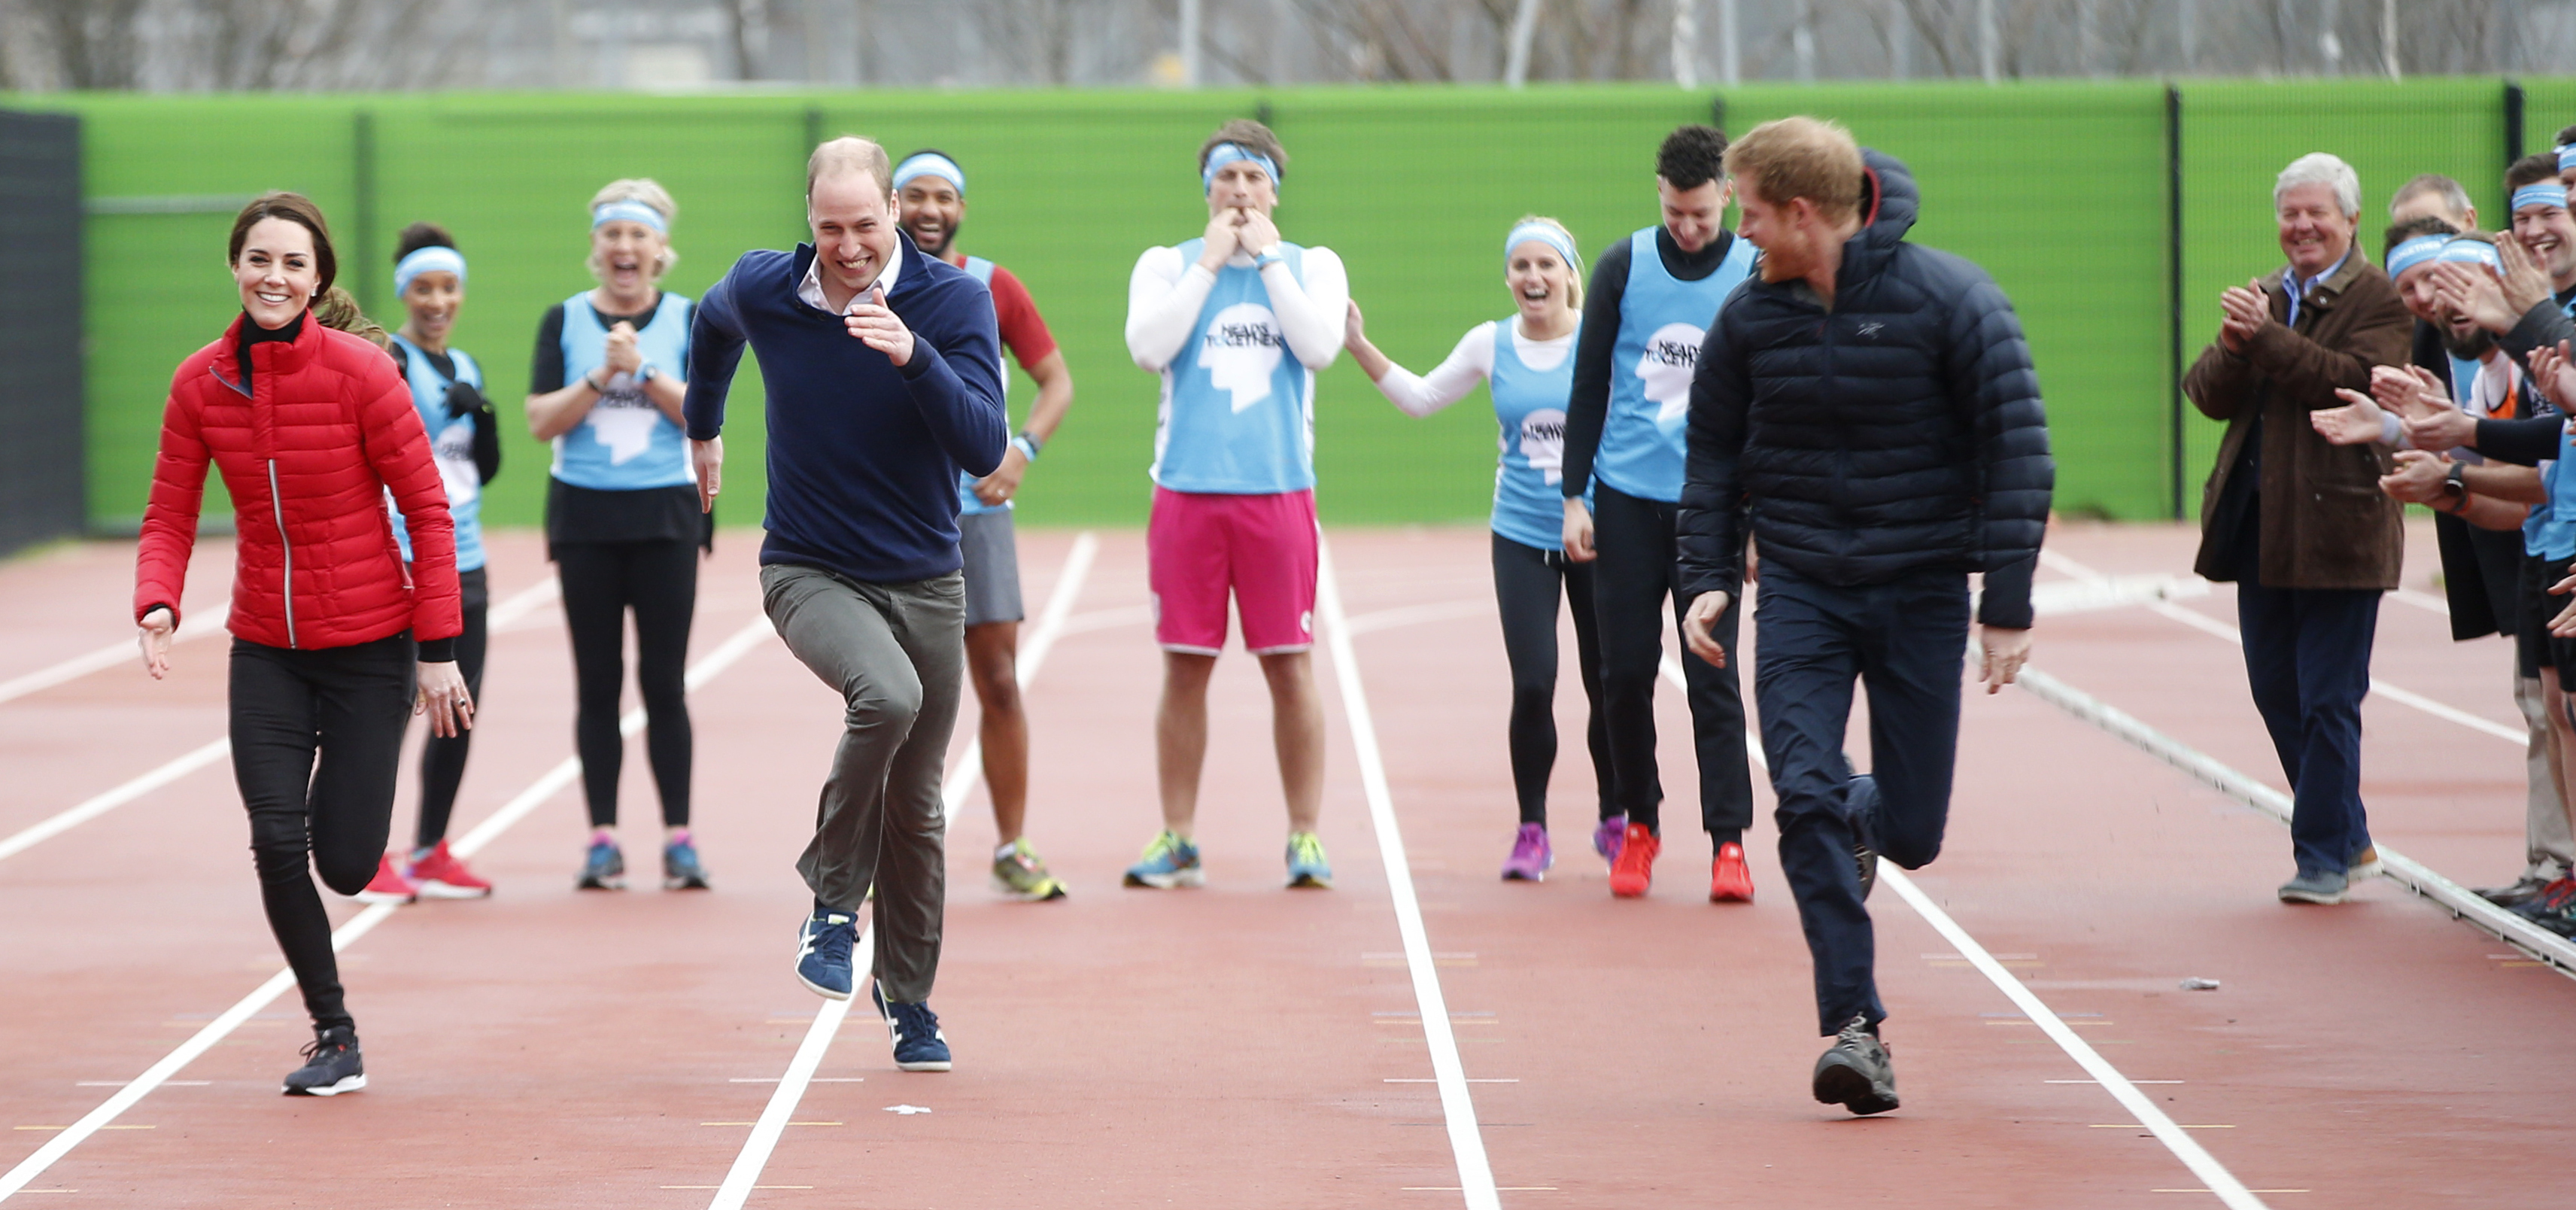 Prince William, Duchess Kate, and Prince Harry had a race, and it was pretty cute like most things they do